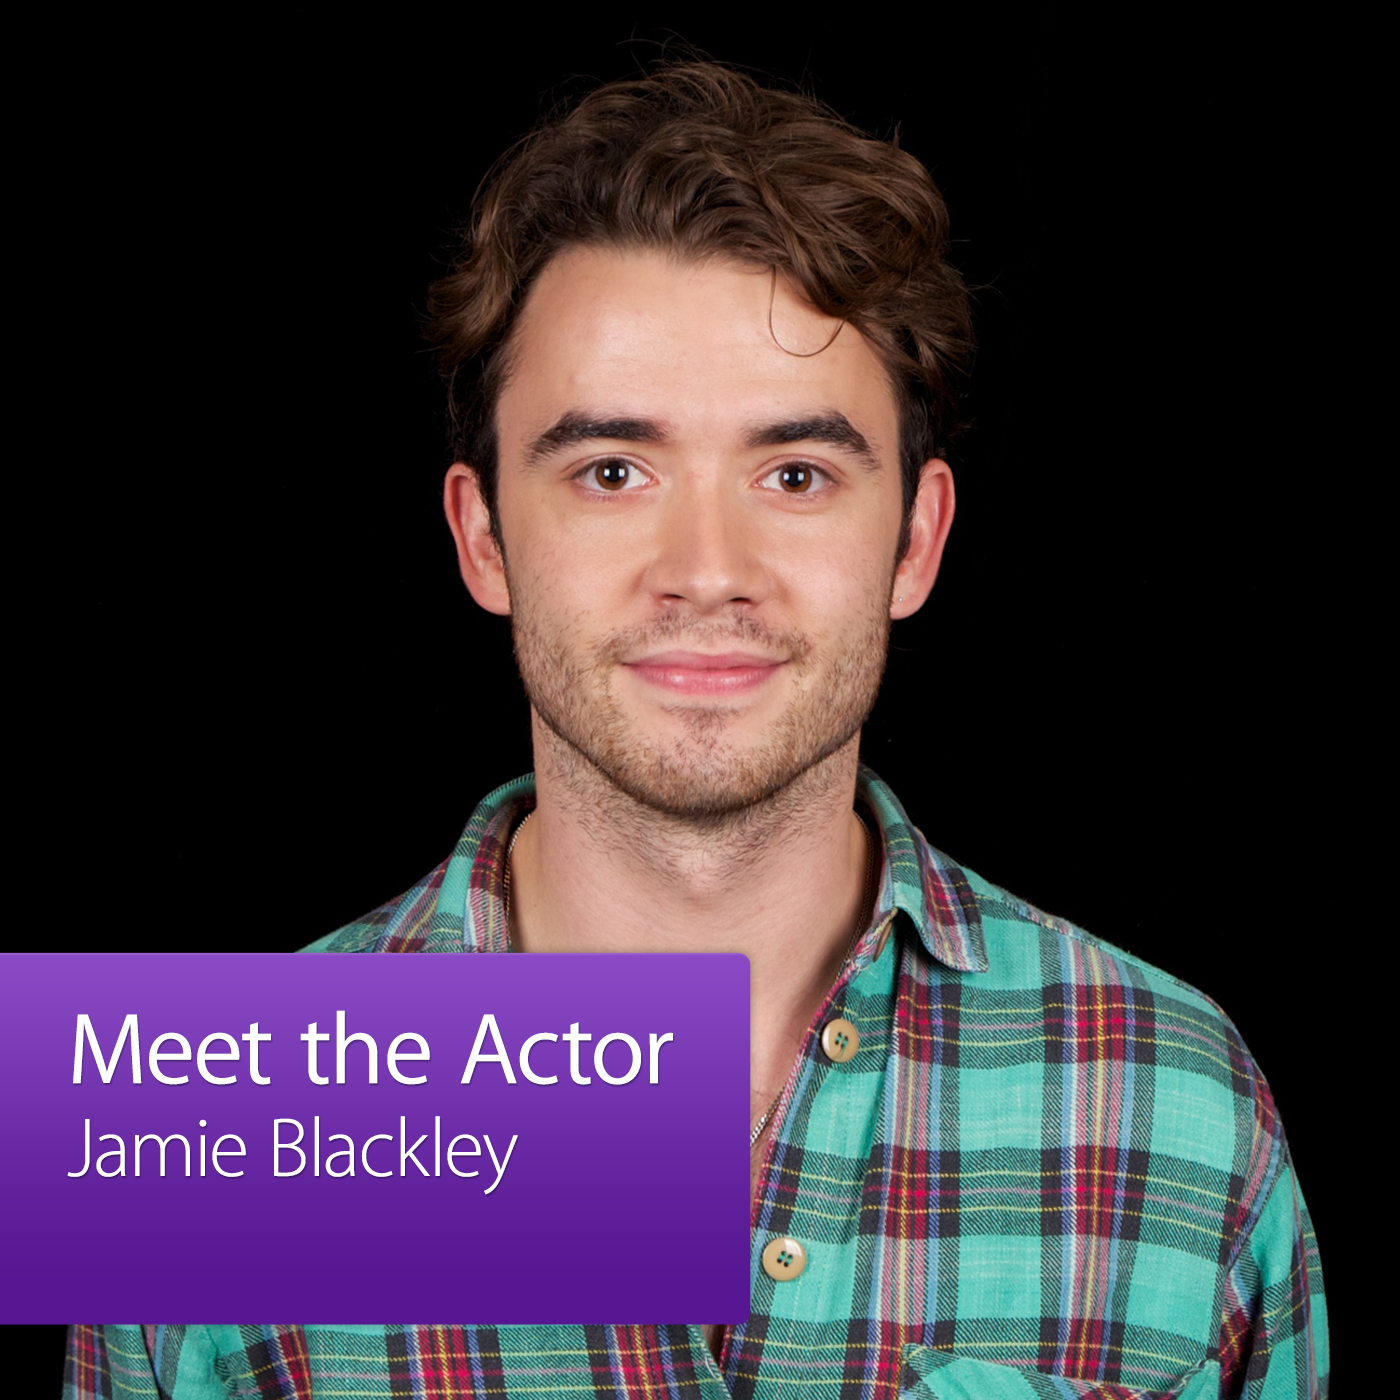 Jamie Blackley: Meet the Actor